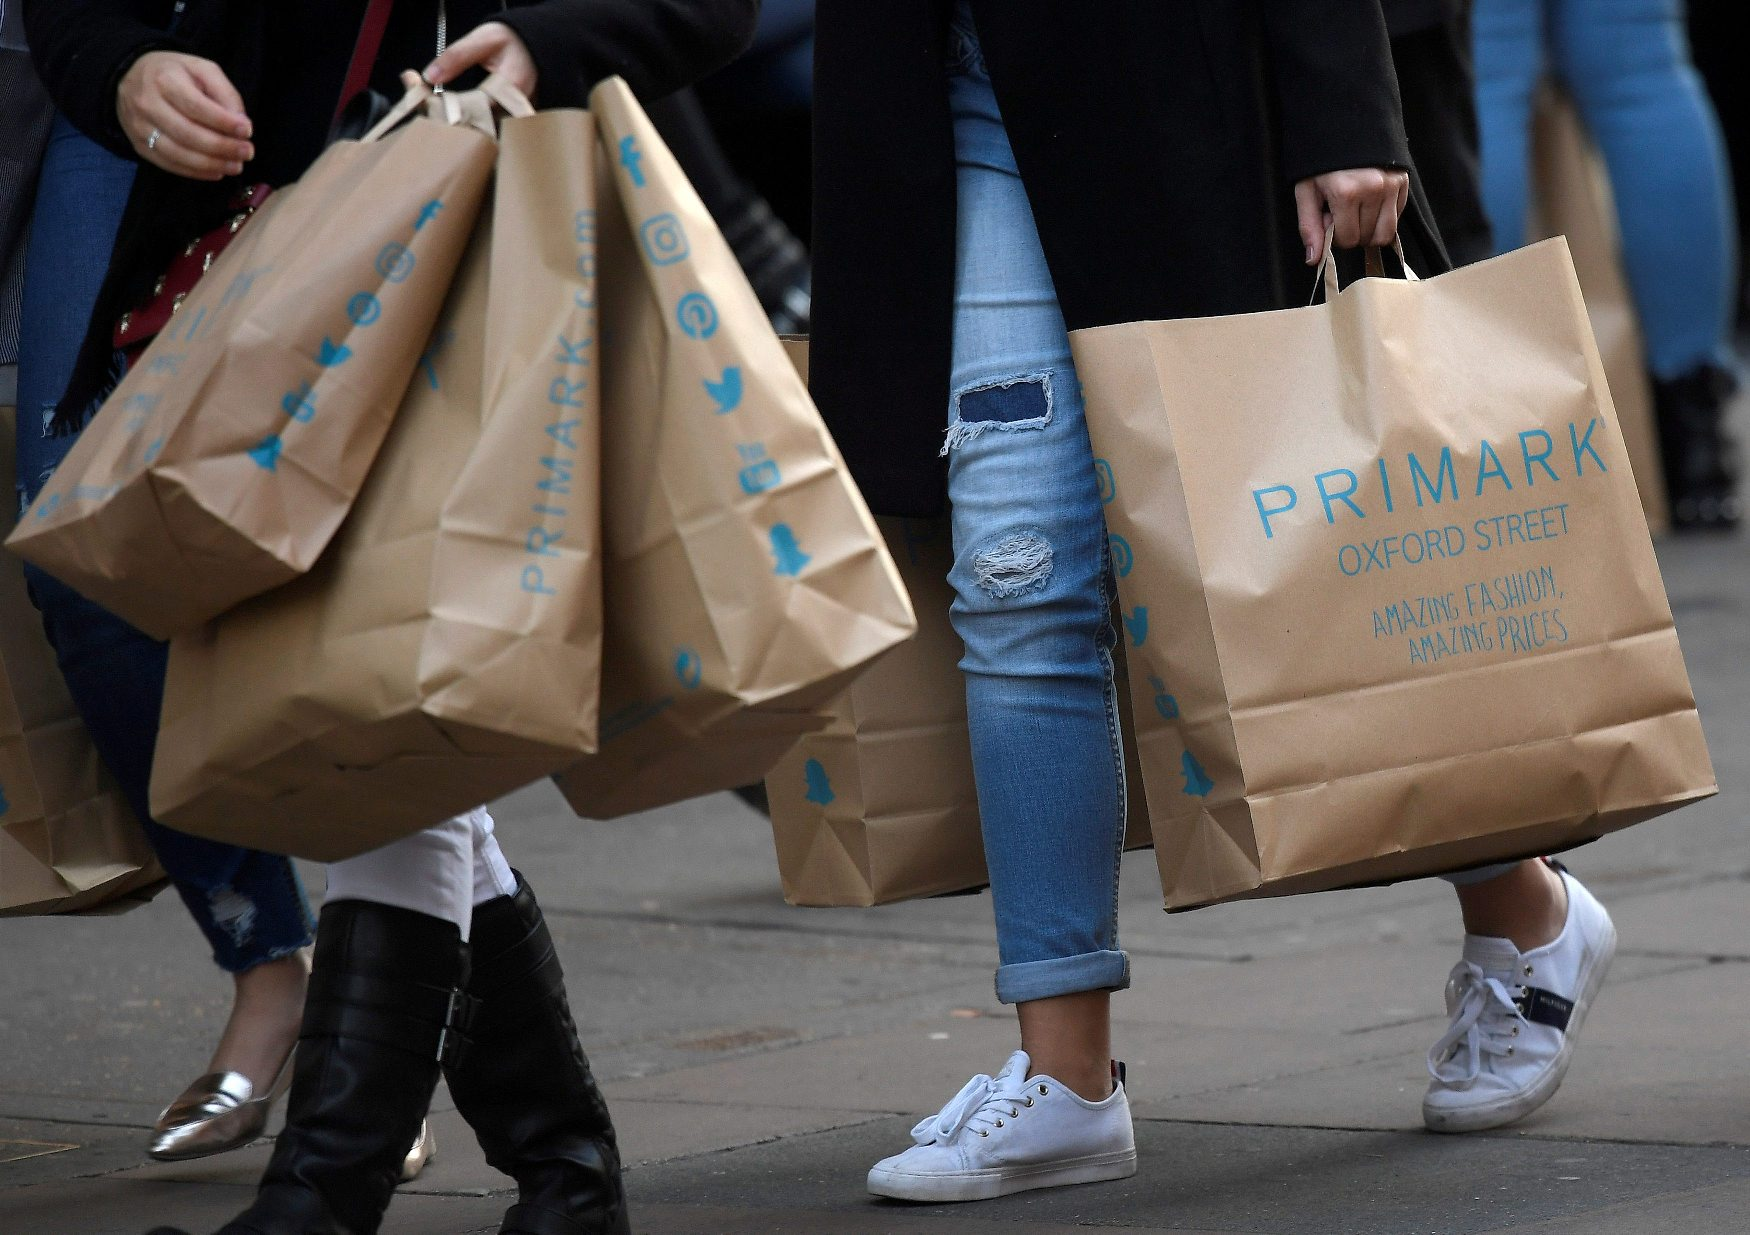 FILE PHOTO: Shoppers carry Primark bags in central London, Britain, November 3, 2017. Picture taken November 3, 2017. REUTERS/Toby Melville/File Photo